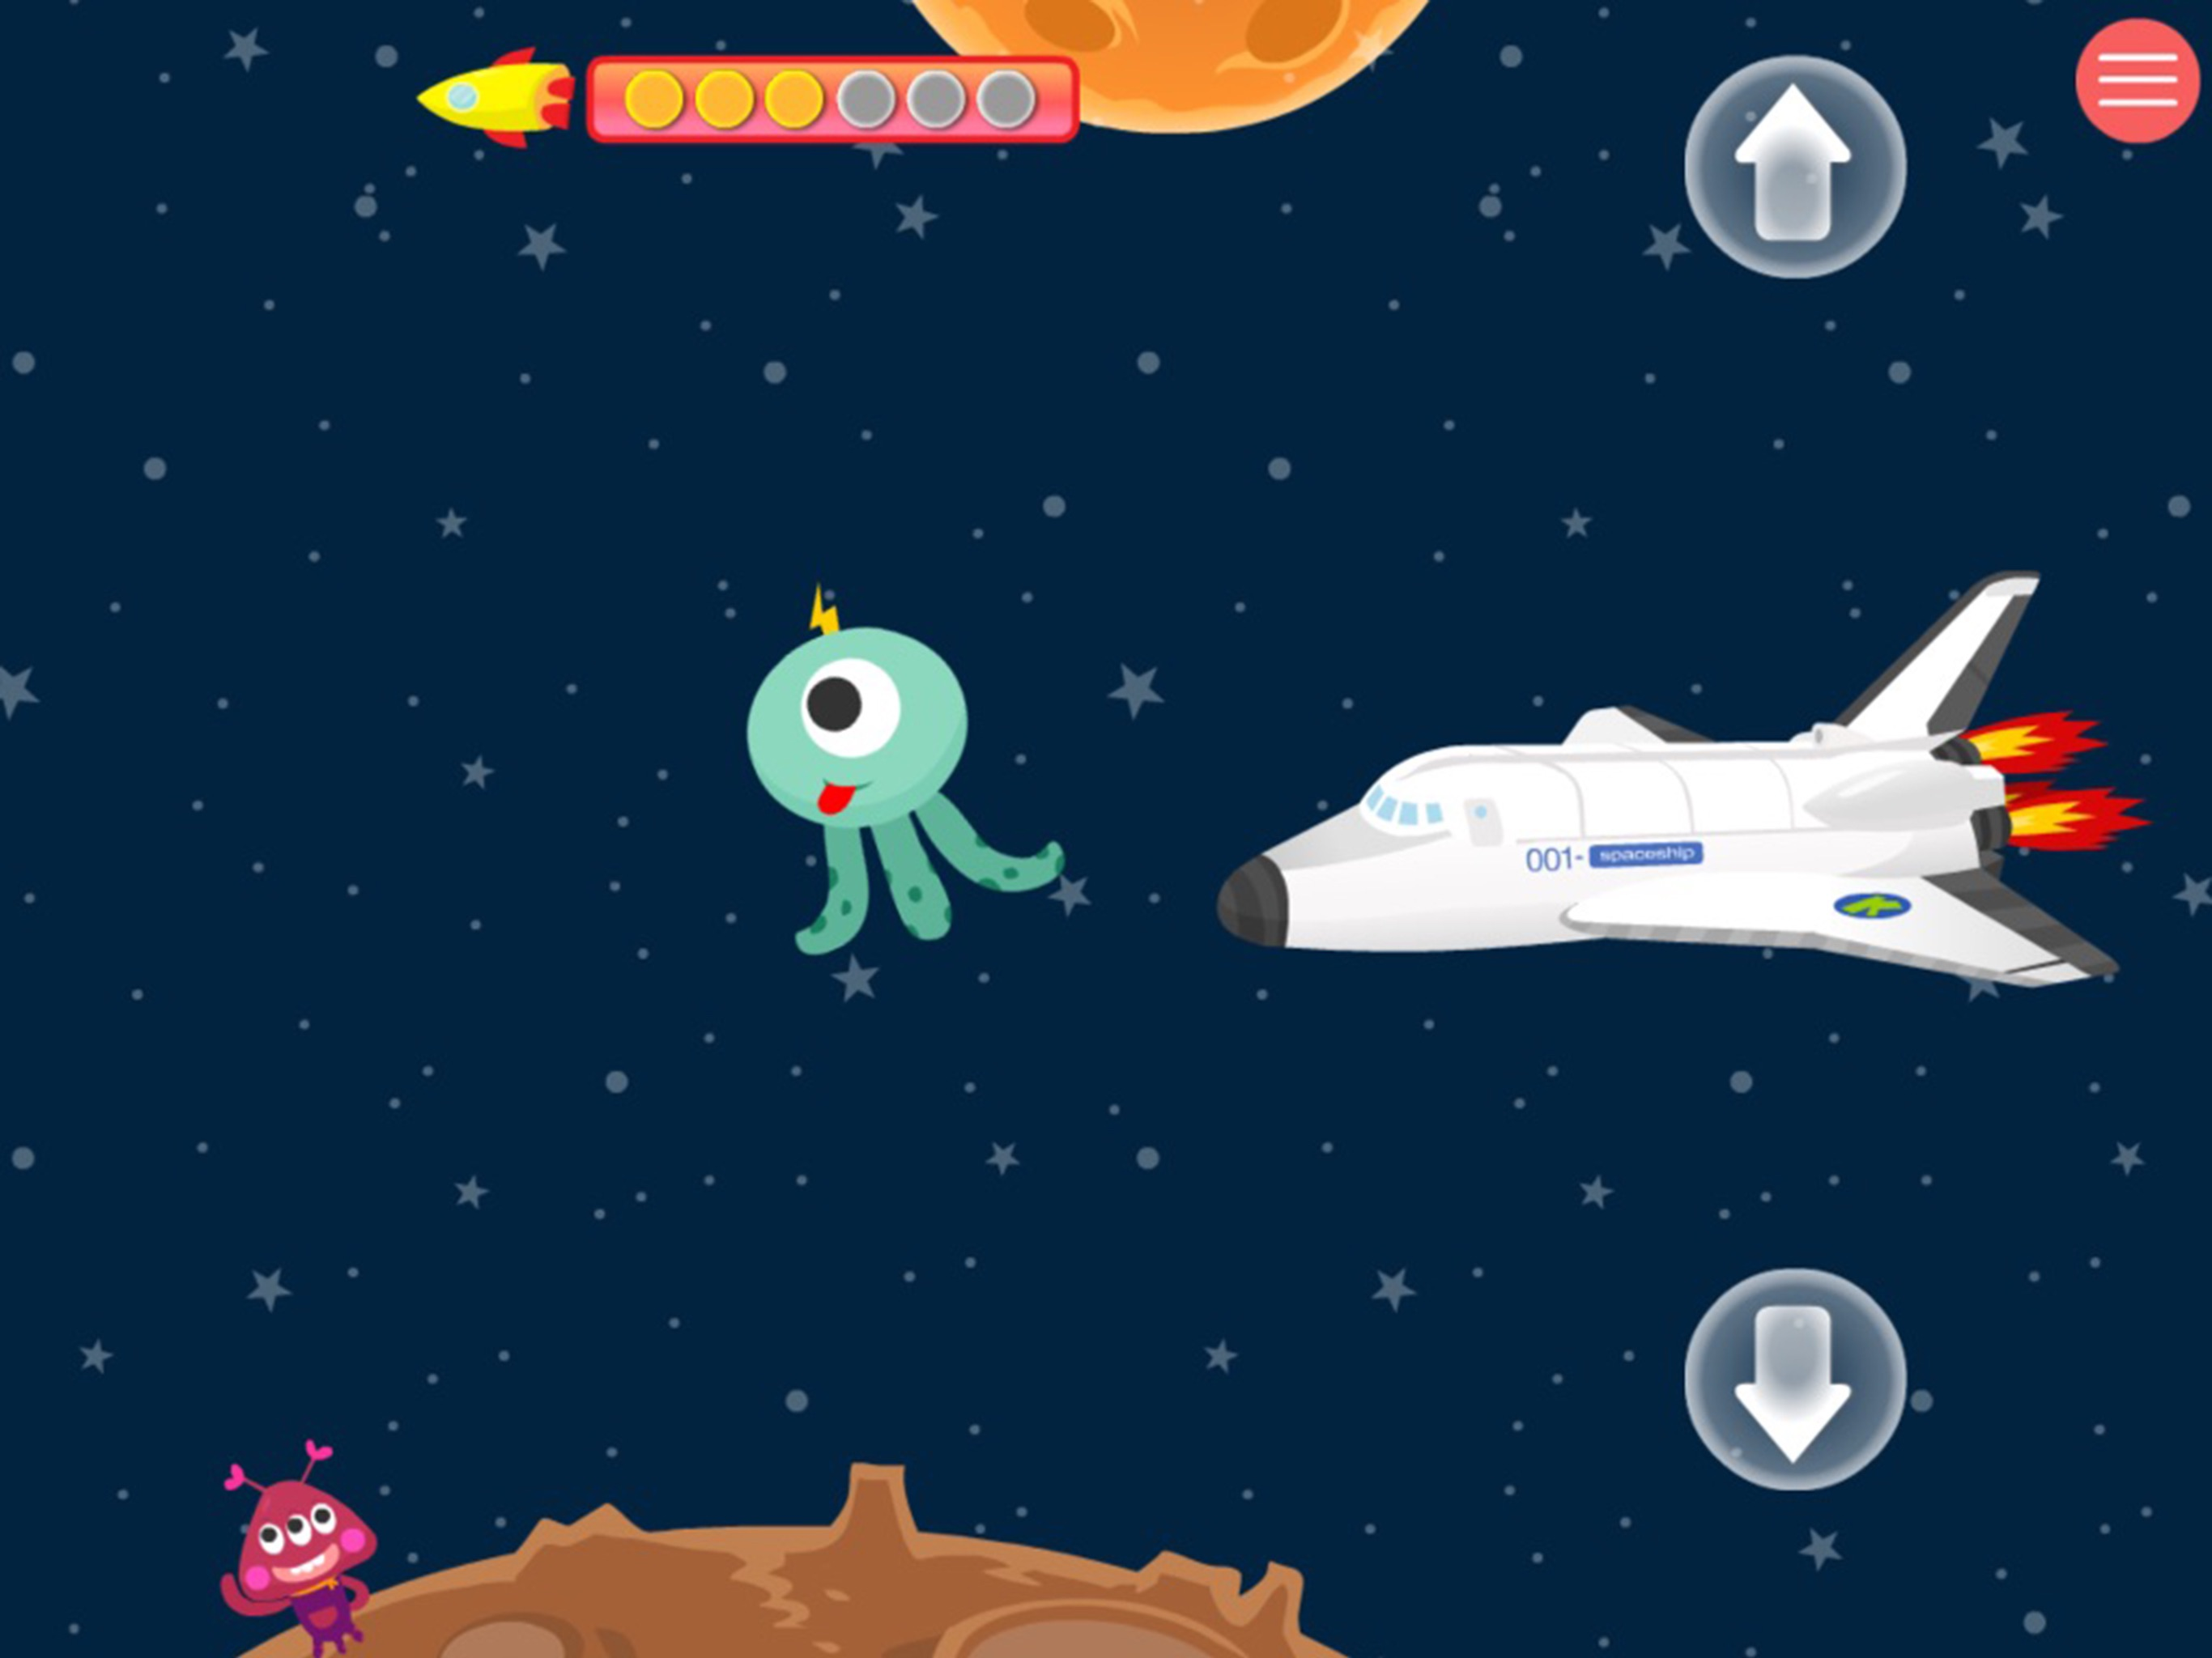 LITTLE EXPLORER: SPACE ADVENTURE - 探索太空冒险